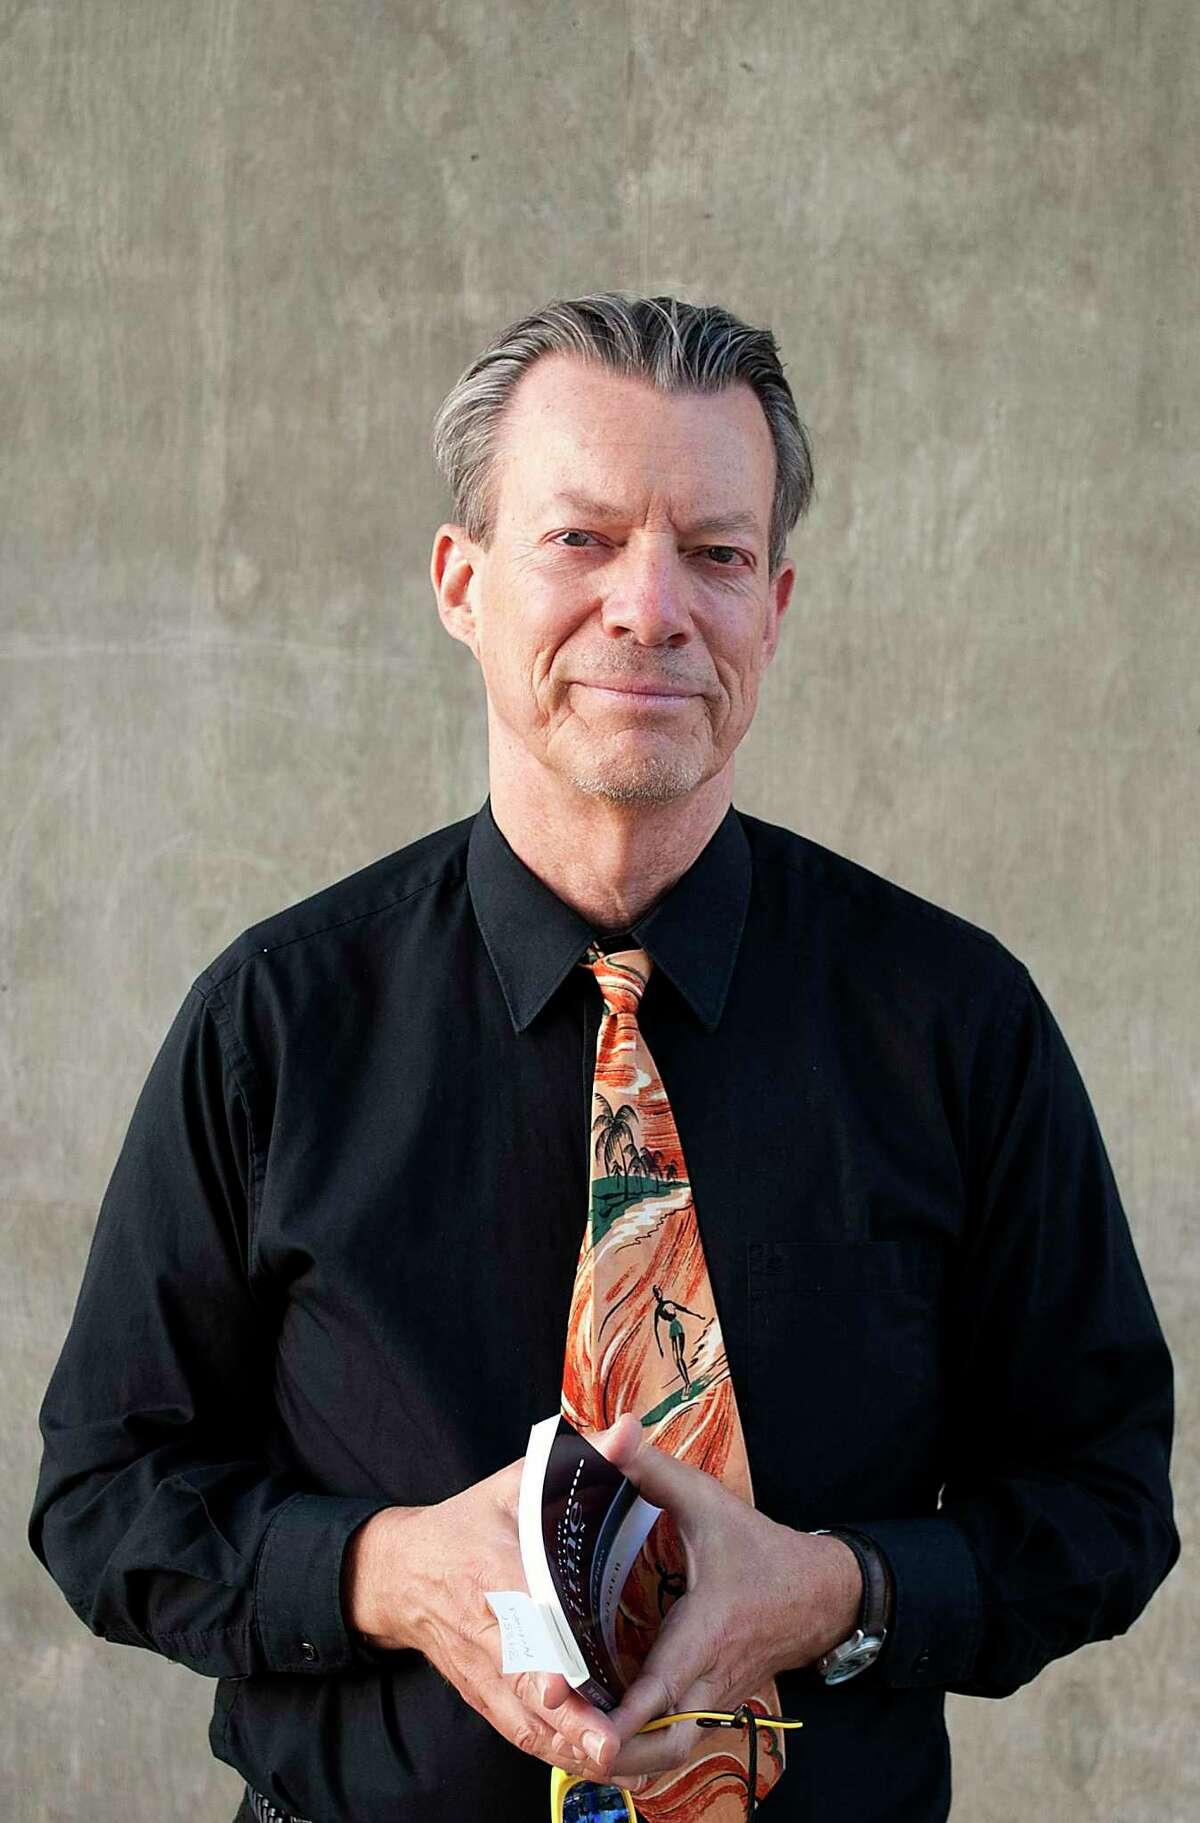 Haystack Book Festival will be held Oct. 1-3 at The Norfolk Library. Authors and speakers include Fenton Johnson, pictured; Robert Jones, Margaret Gibson and Dinah Lenney.